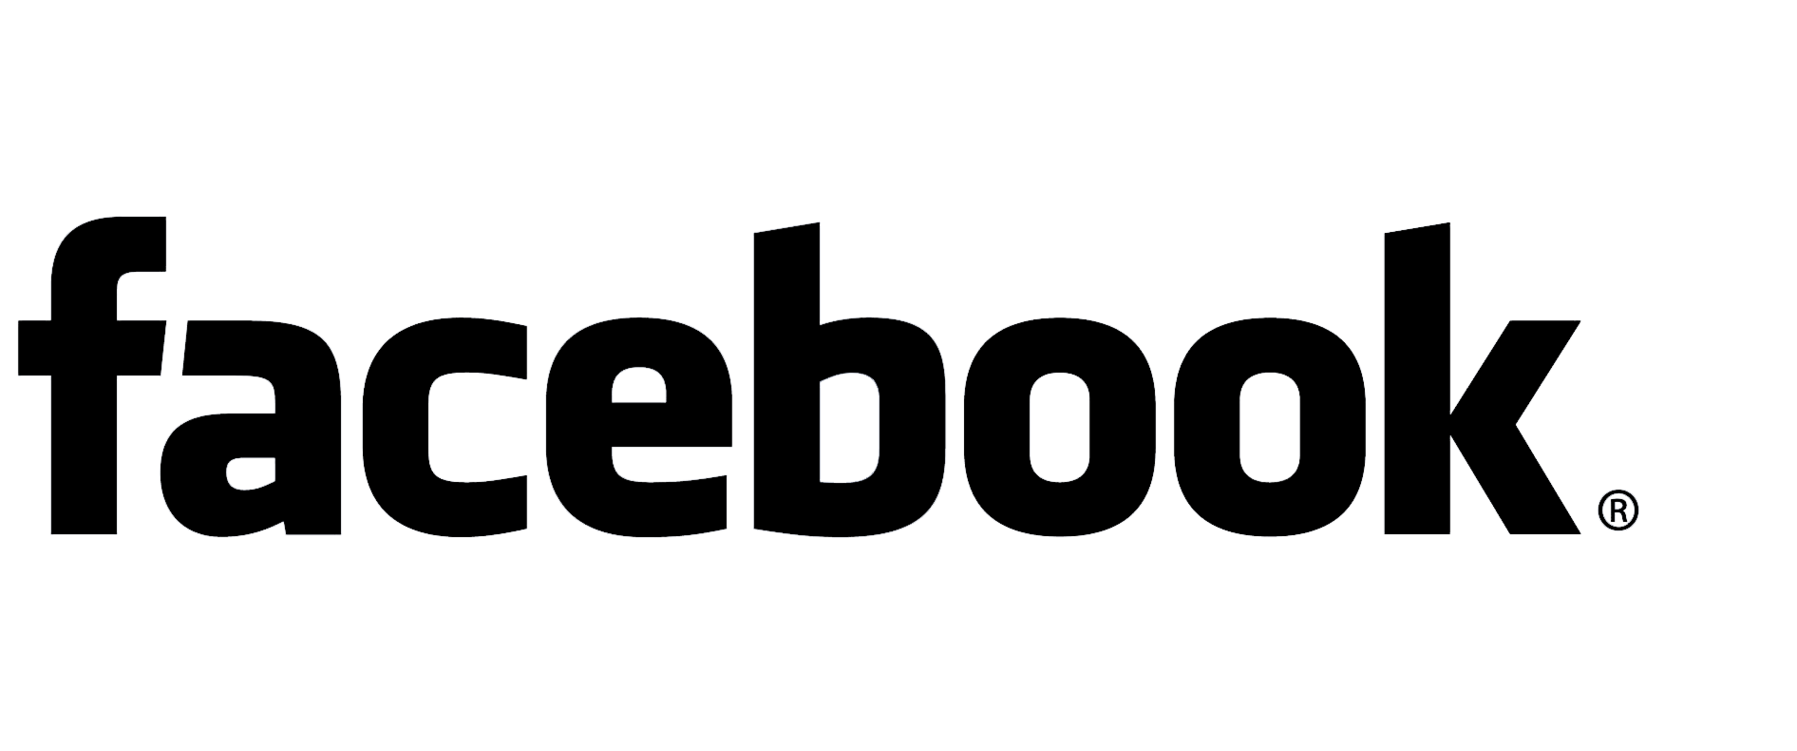 Facebook Logo Black Png (+).